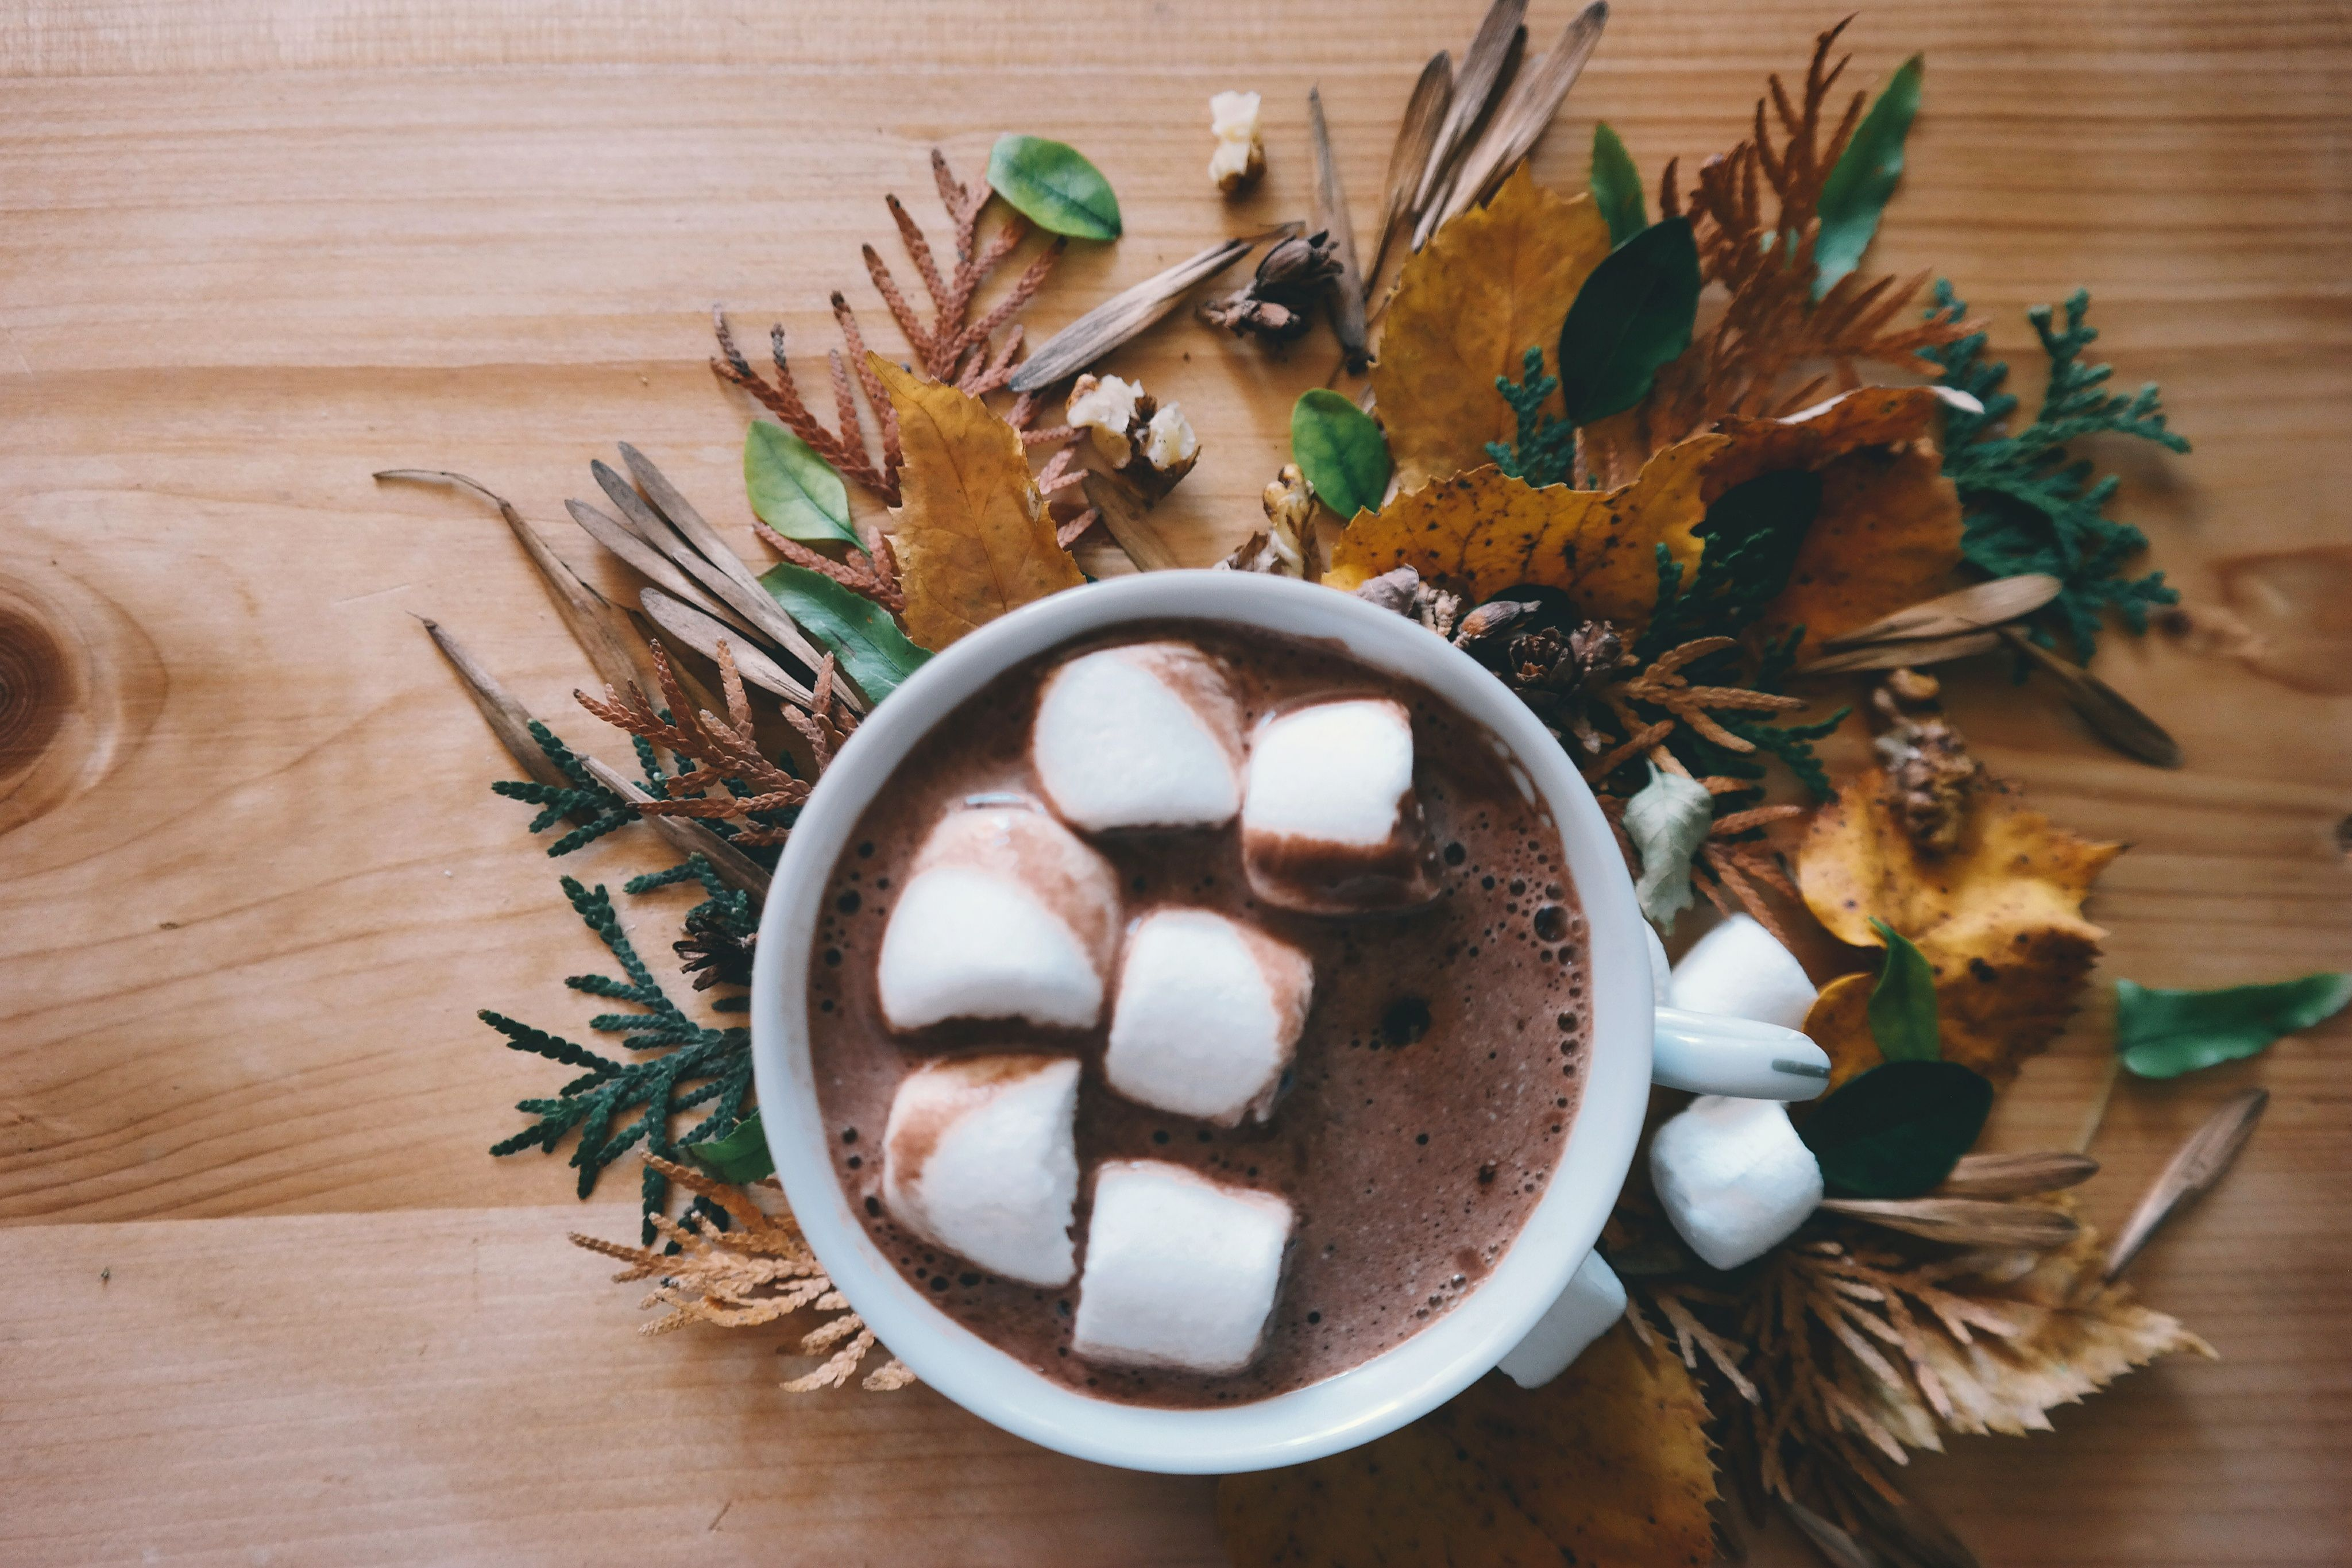 Healthy Marshmallows for Your Holiday Hot Chocolate #healthymarshmallows Homemade Marshmallows | Beekeeper's Naturals #healthymarshmallows